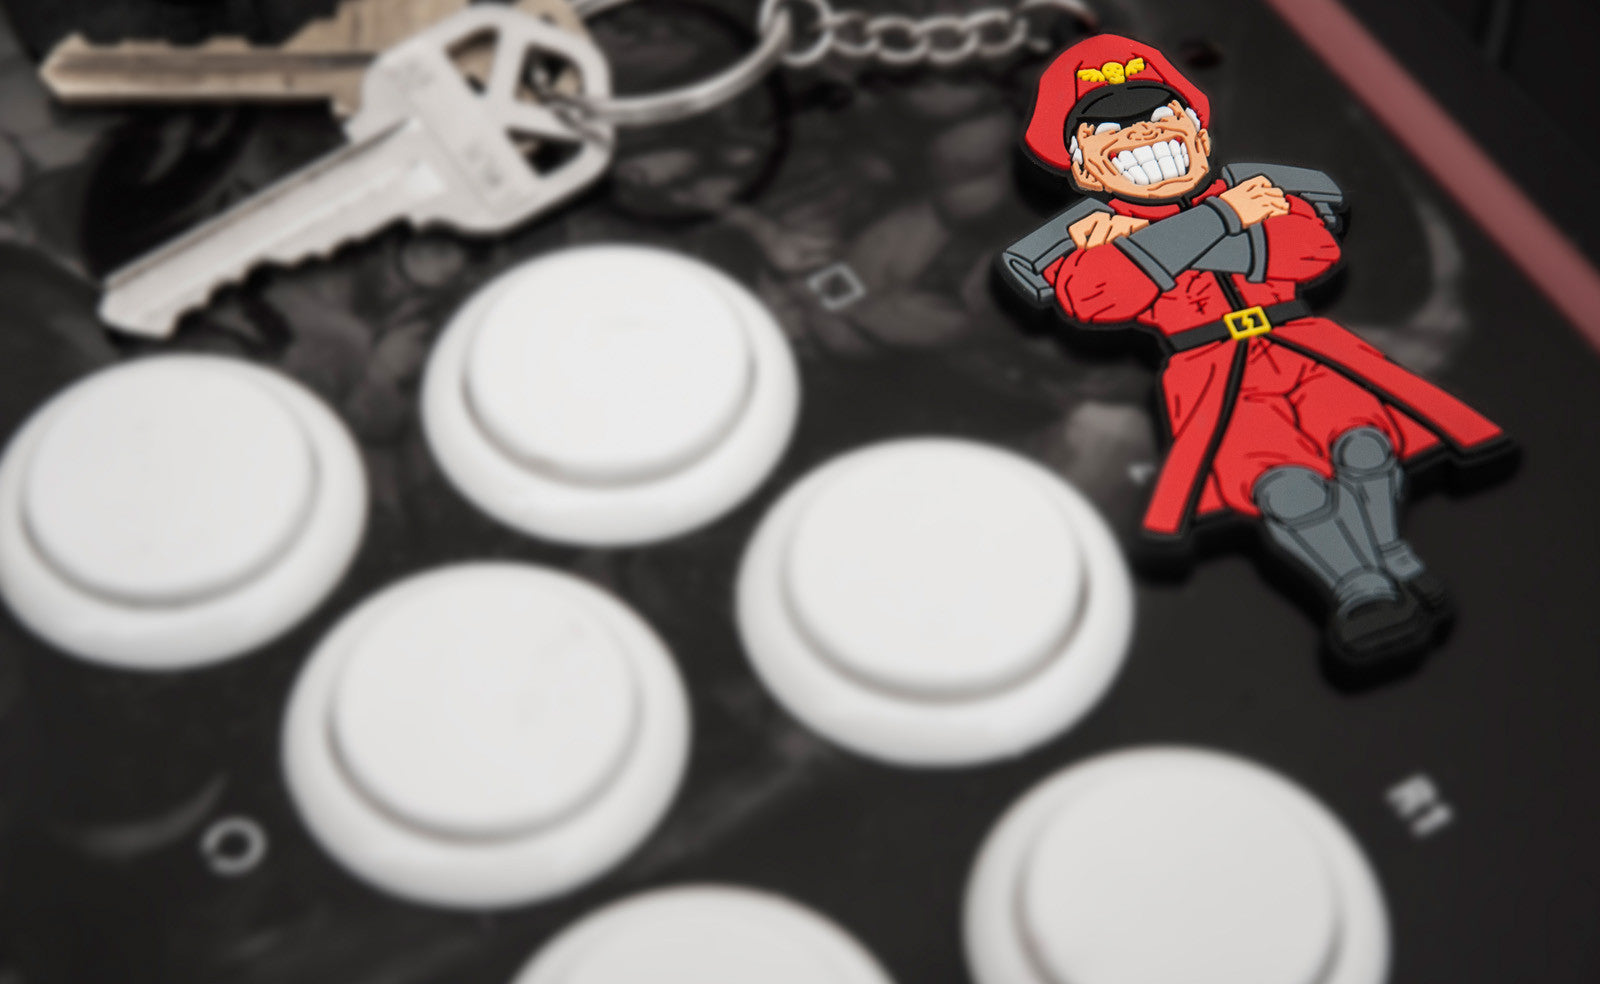 Street Fighter M. Bison Keychain by Eighty Sixed